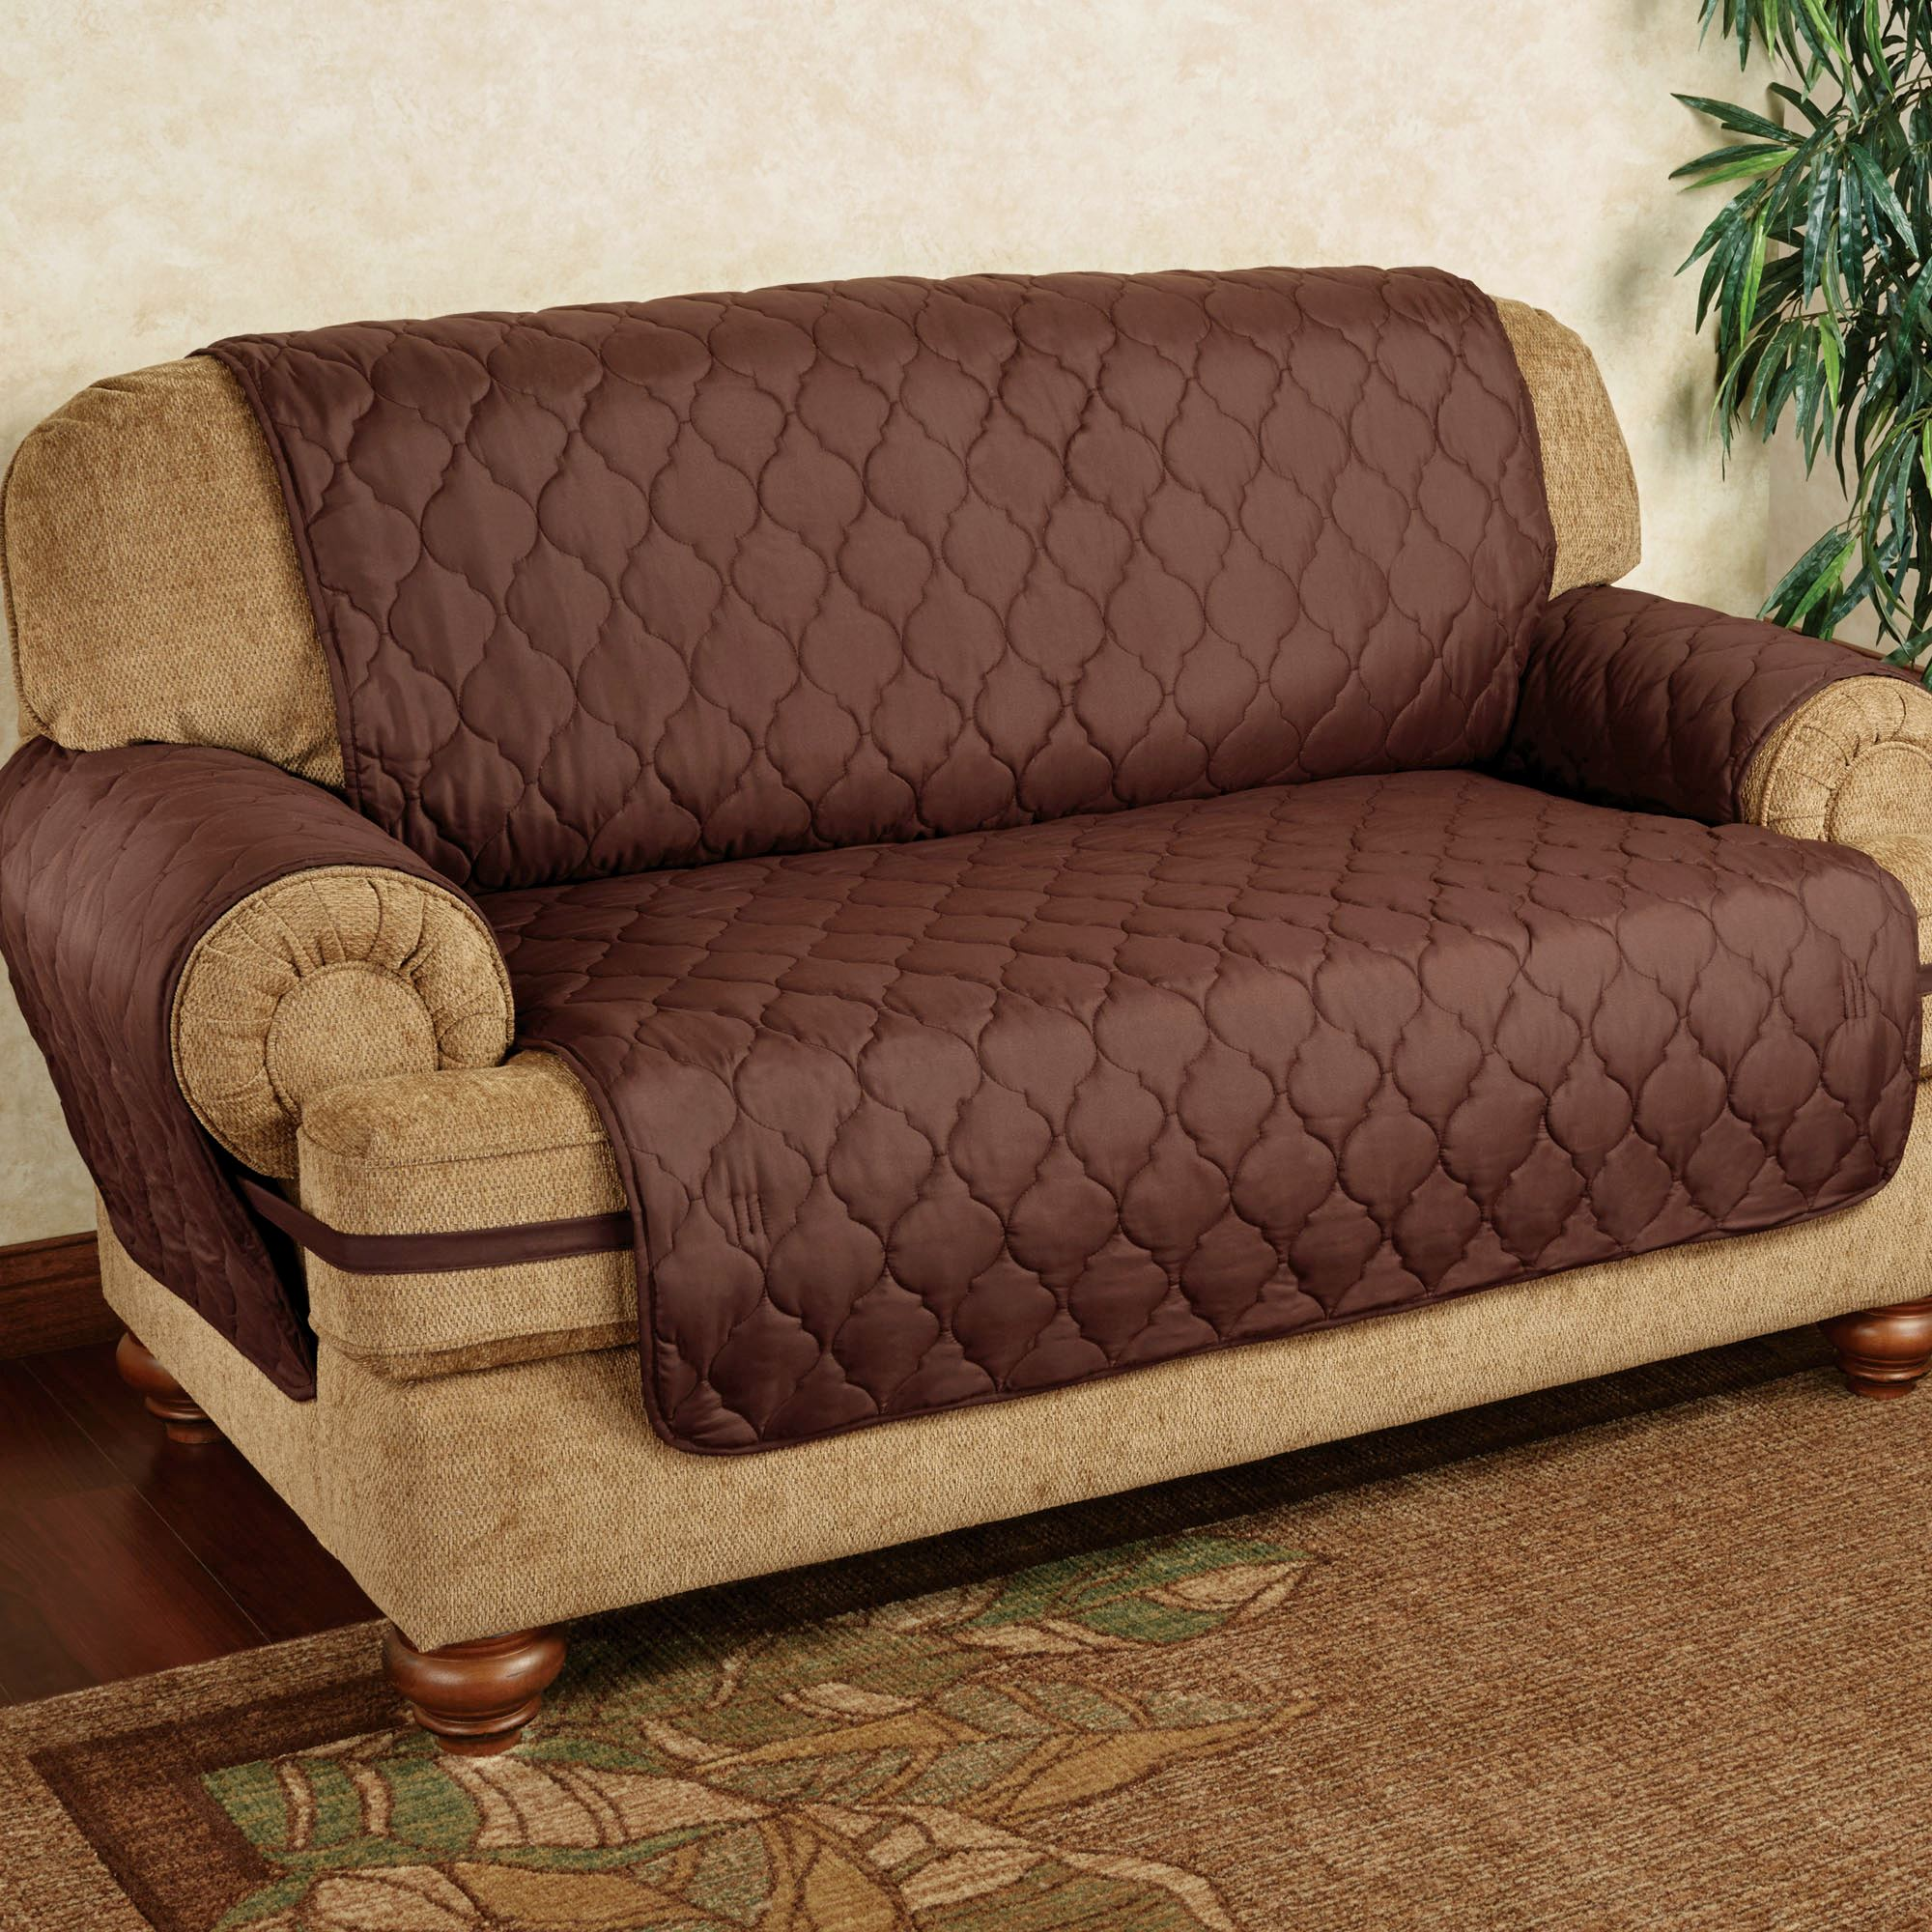 Paramount Solid Color Quilted Furniture Protectors : quilted furniture protectors - Adamdwight.com